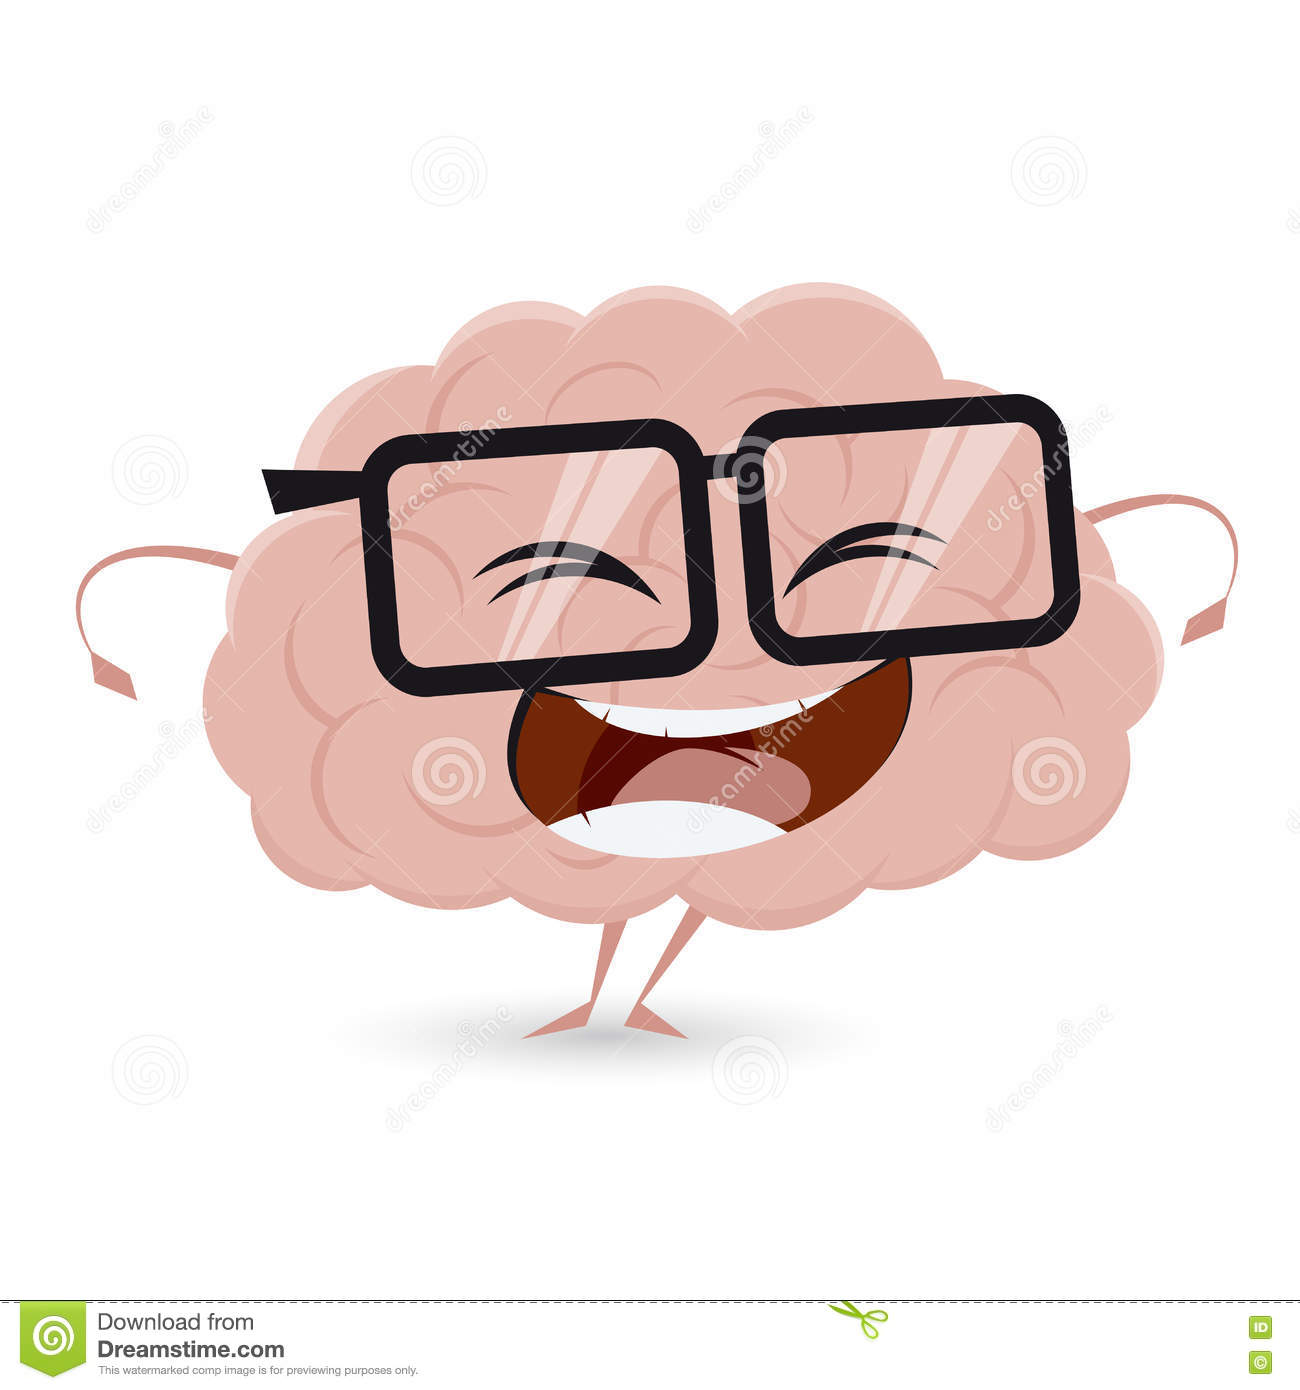 Funny brain with nerd glasses